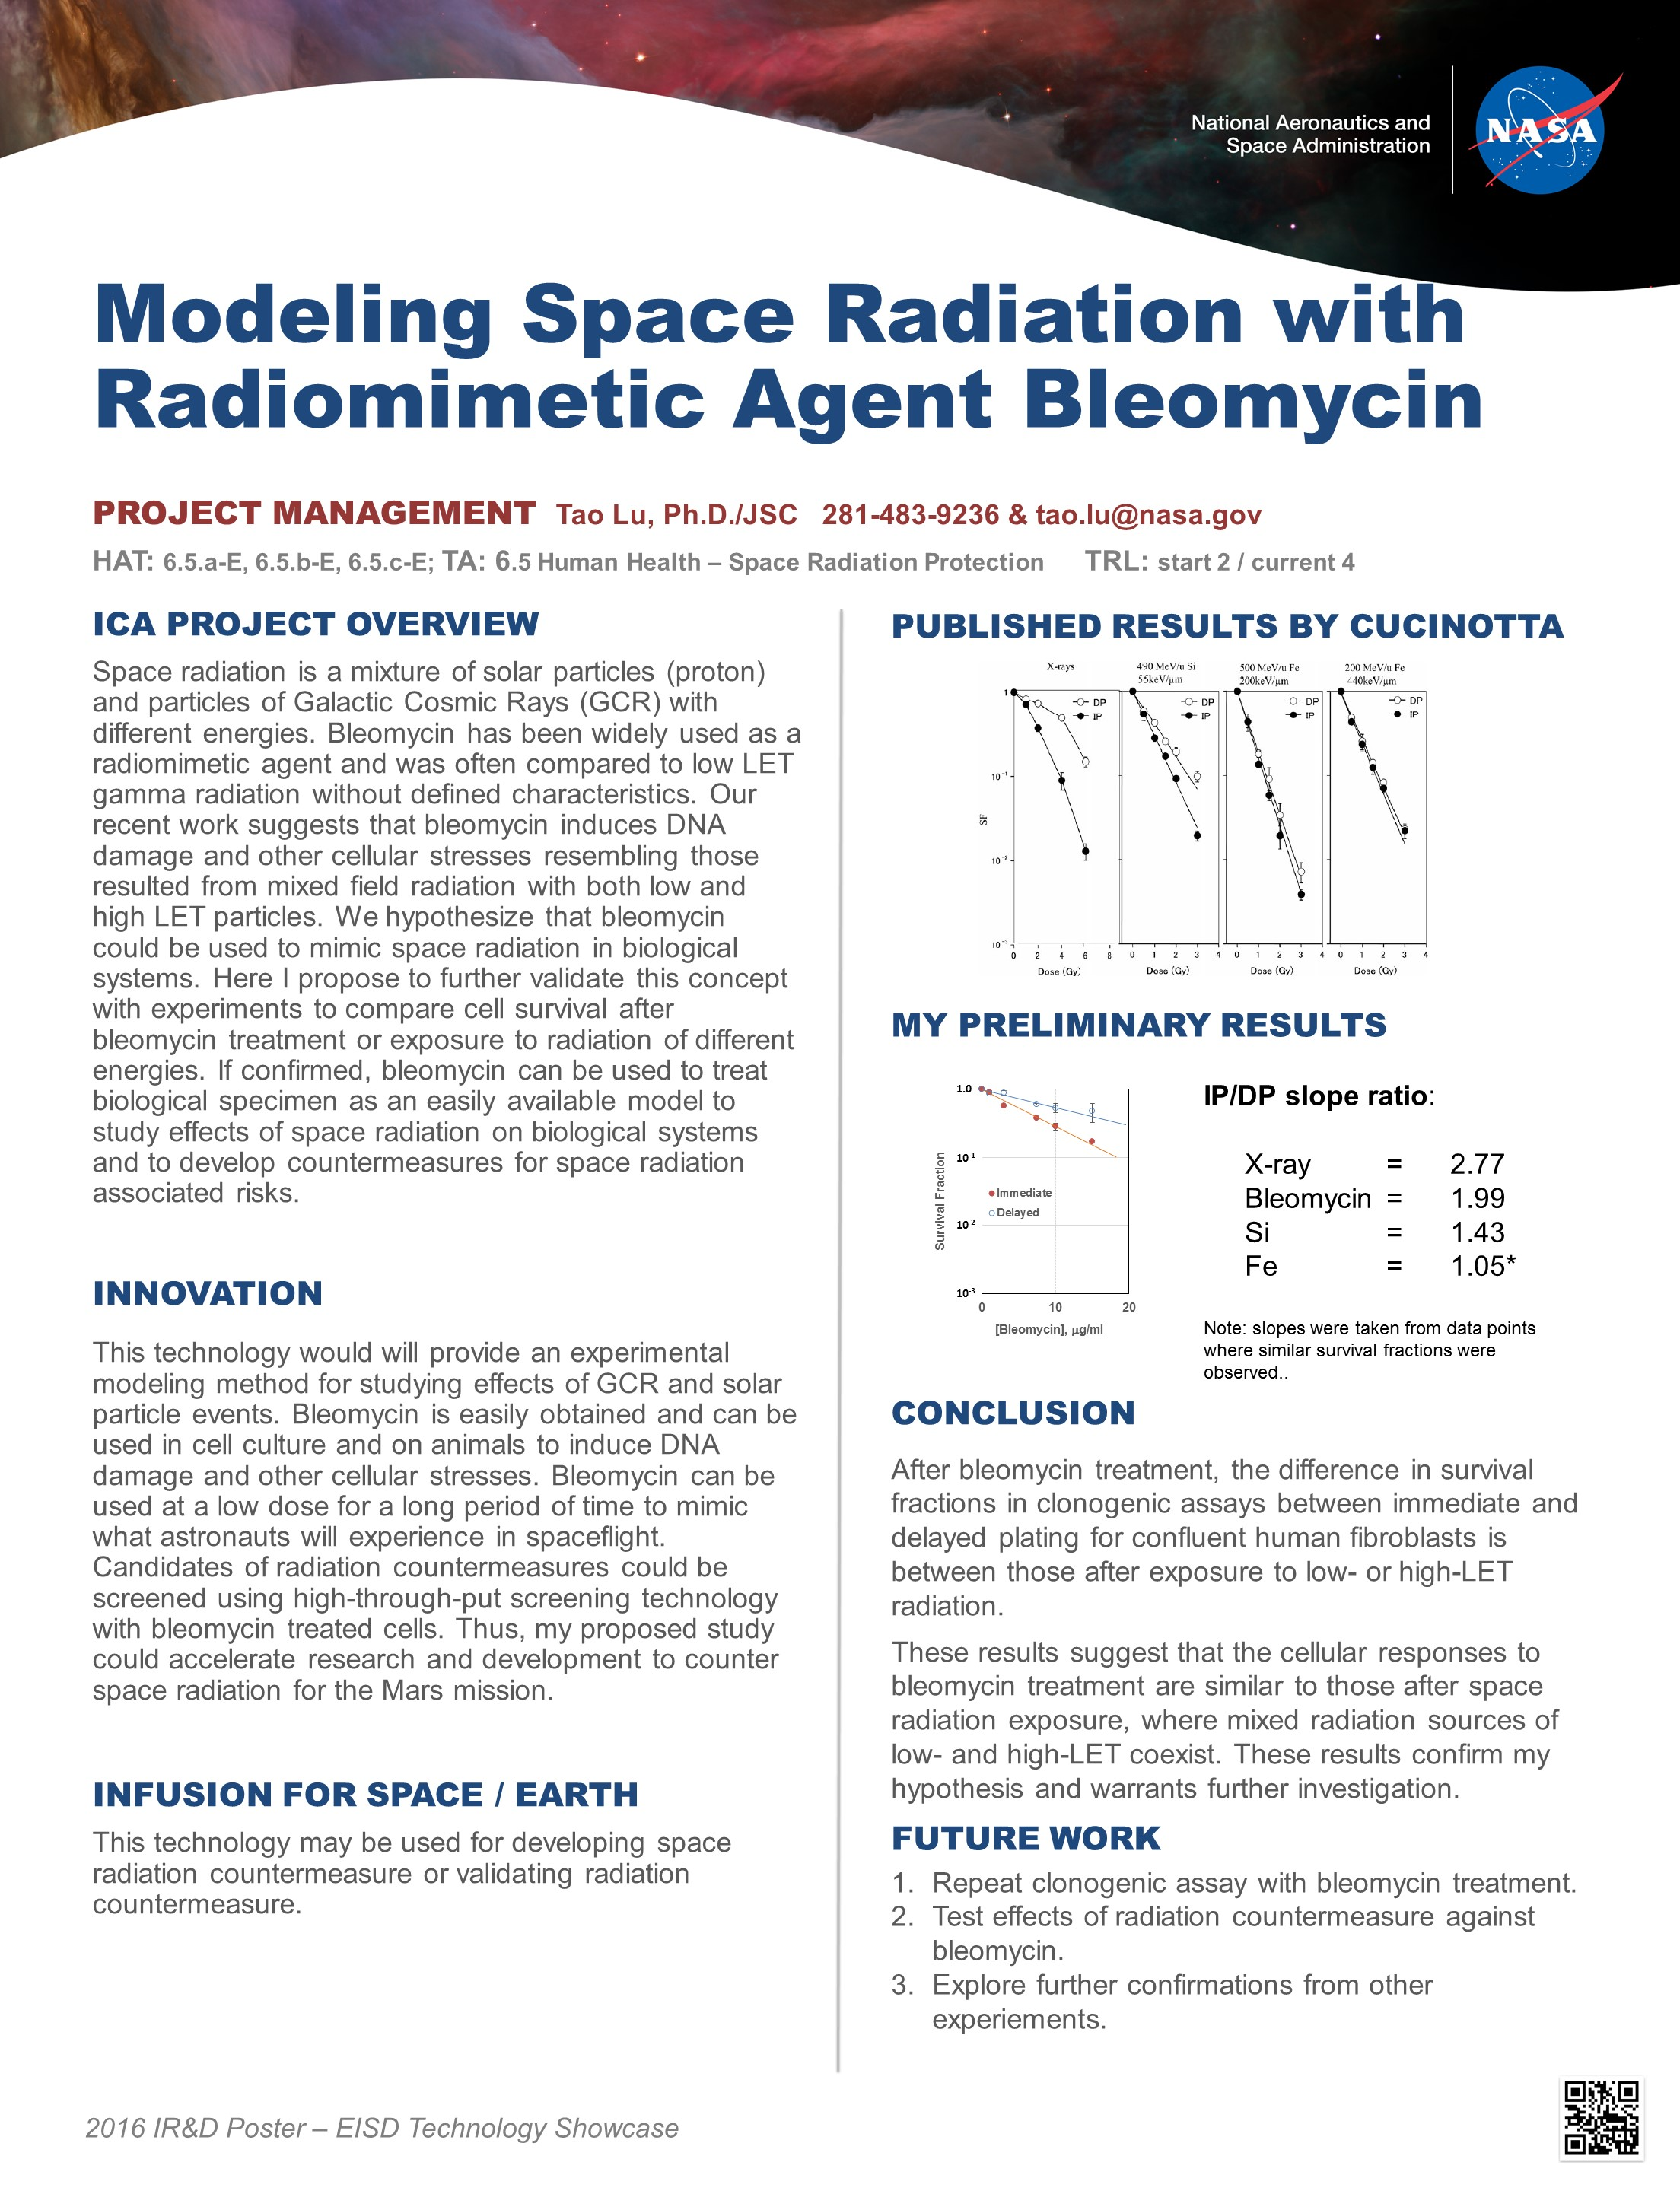 Modeling Space Radiation with Bleomycin Technology Showcase 2016 Project Poster